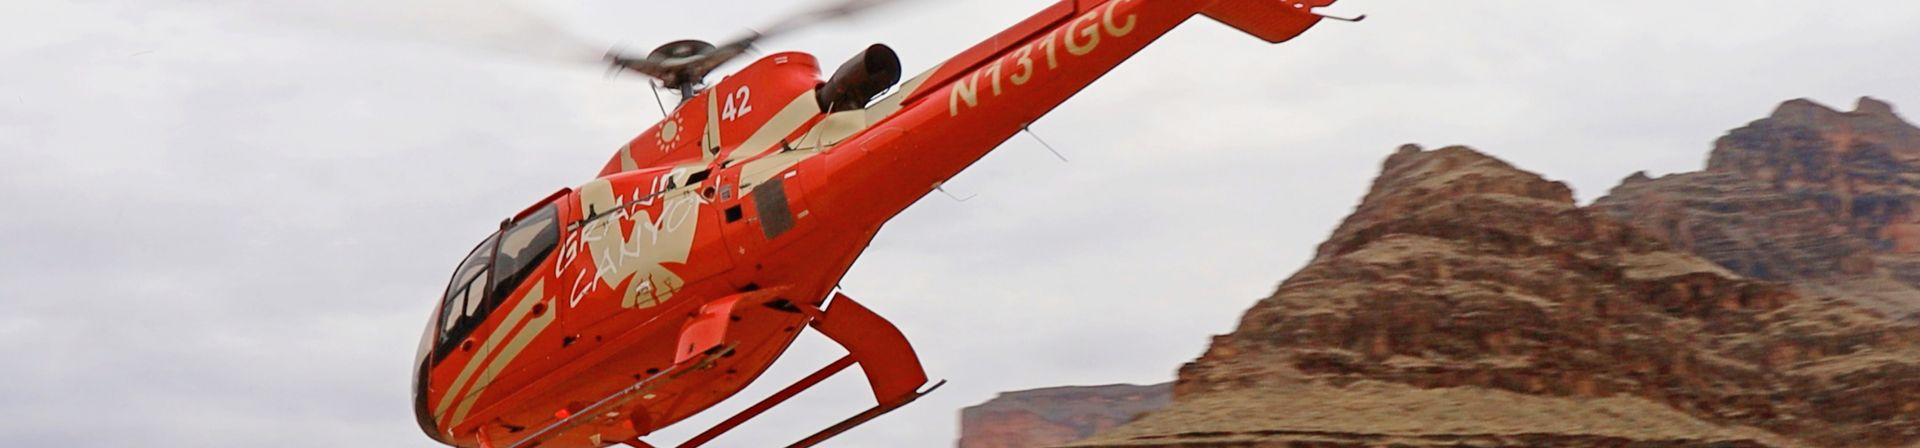 A helicopter provides transportation from the rim at Grand Canyon West down to the riverside boat dock.